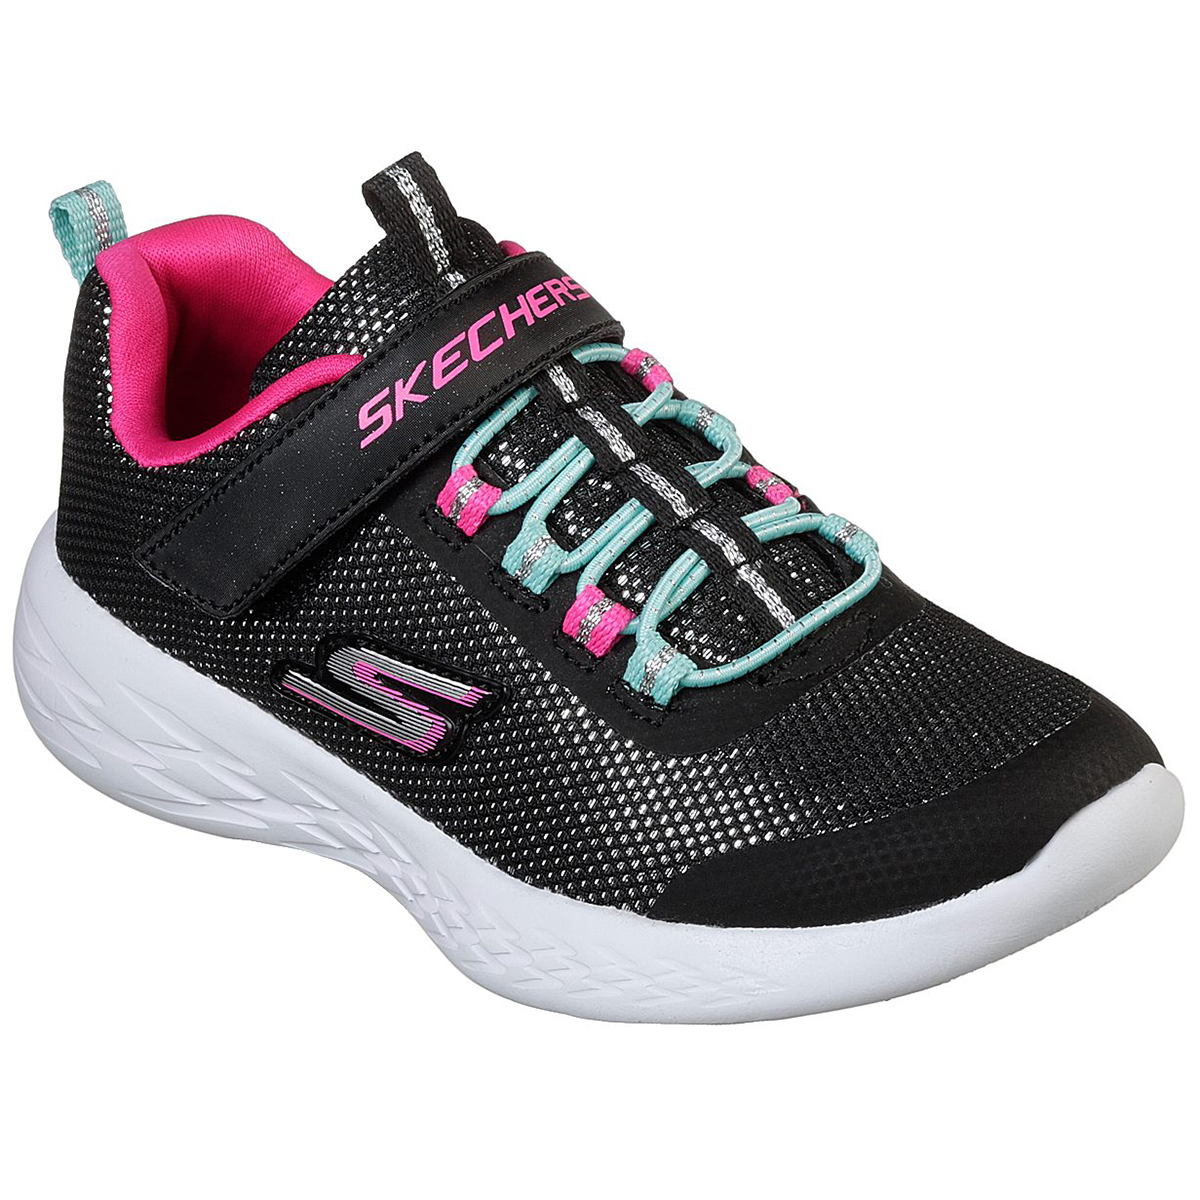 Skechers Little Girls' Gorun 600 - Sparkle Runner Sneakers - Black, 1.5